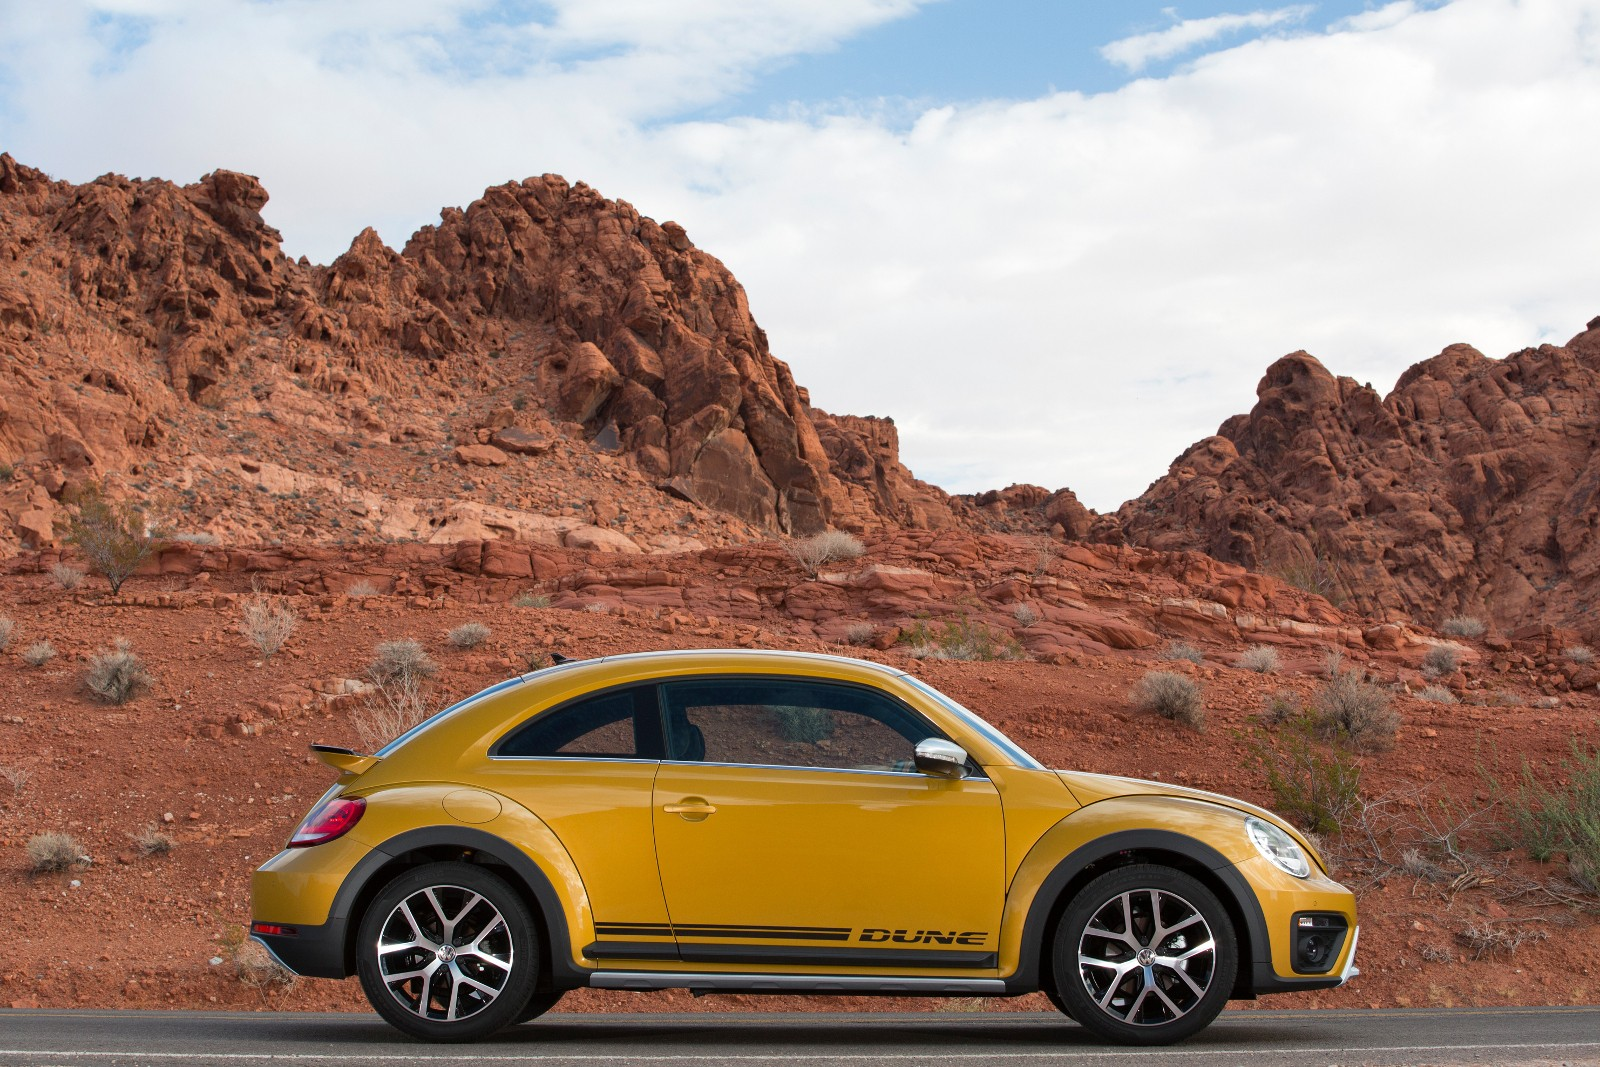 Volkswagen Beetle 2017 review, specification, price